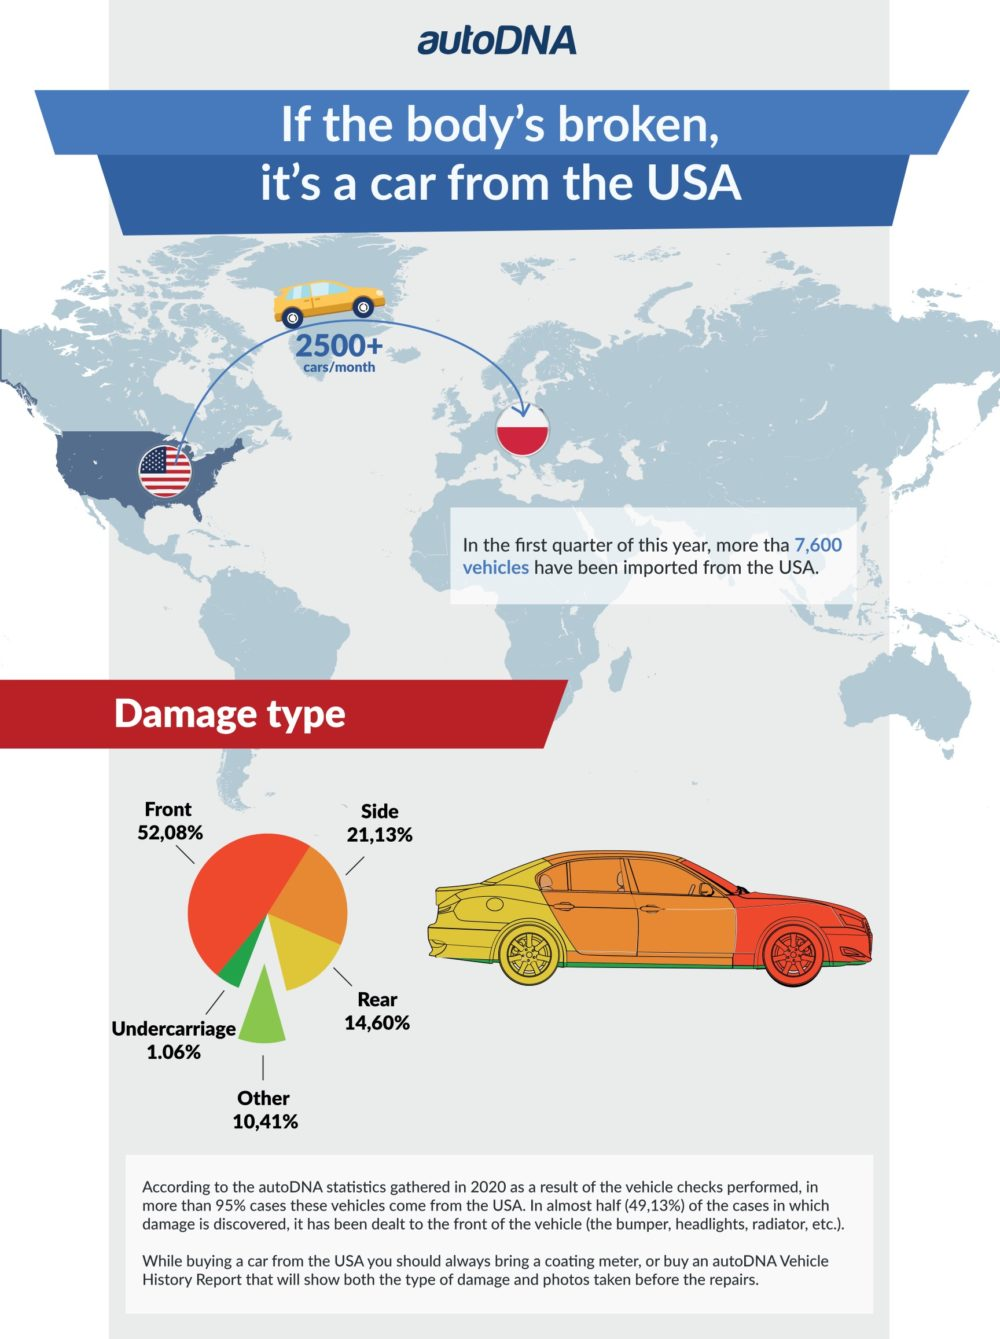 If the body's broken, it's imported car from the USA info2